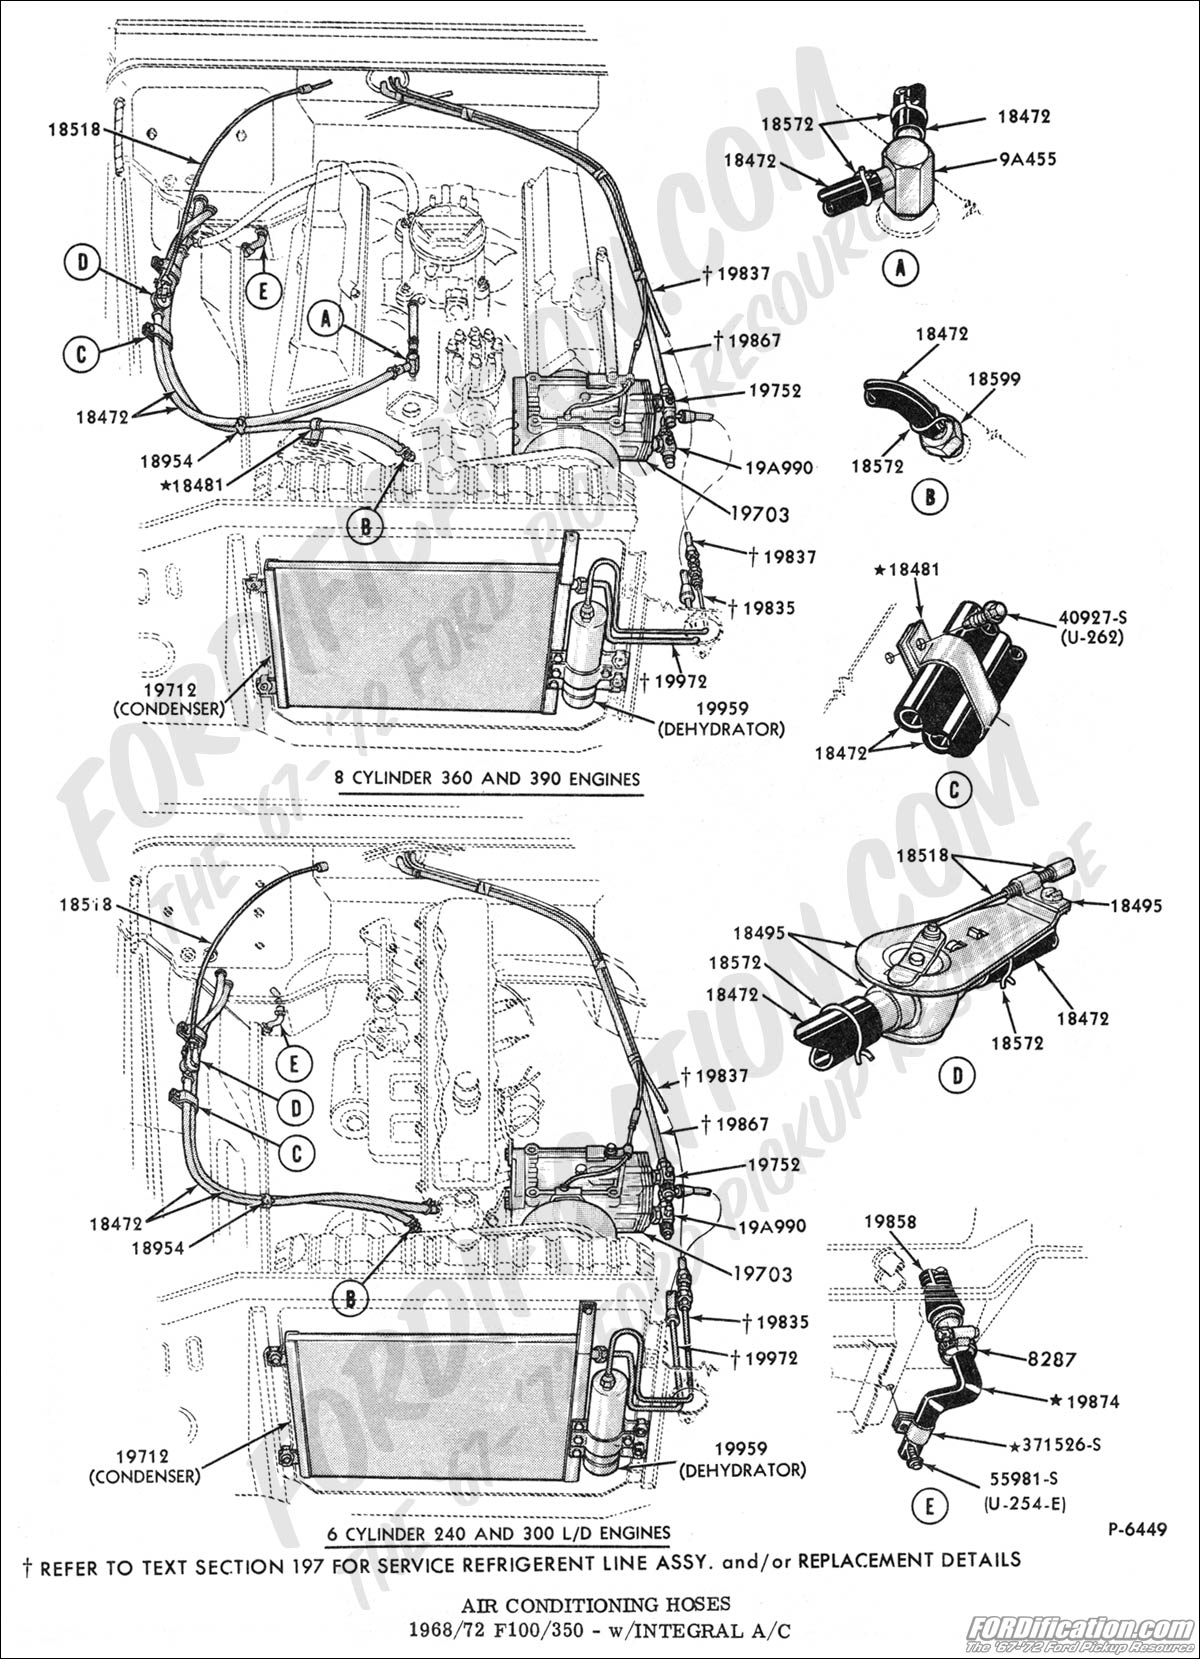 1997 ford ranger heating system diagram  1997  free engine image for user manual download